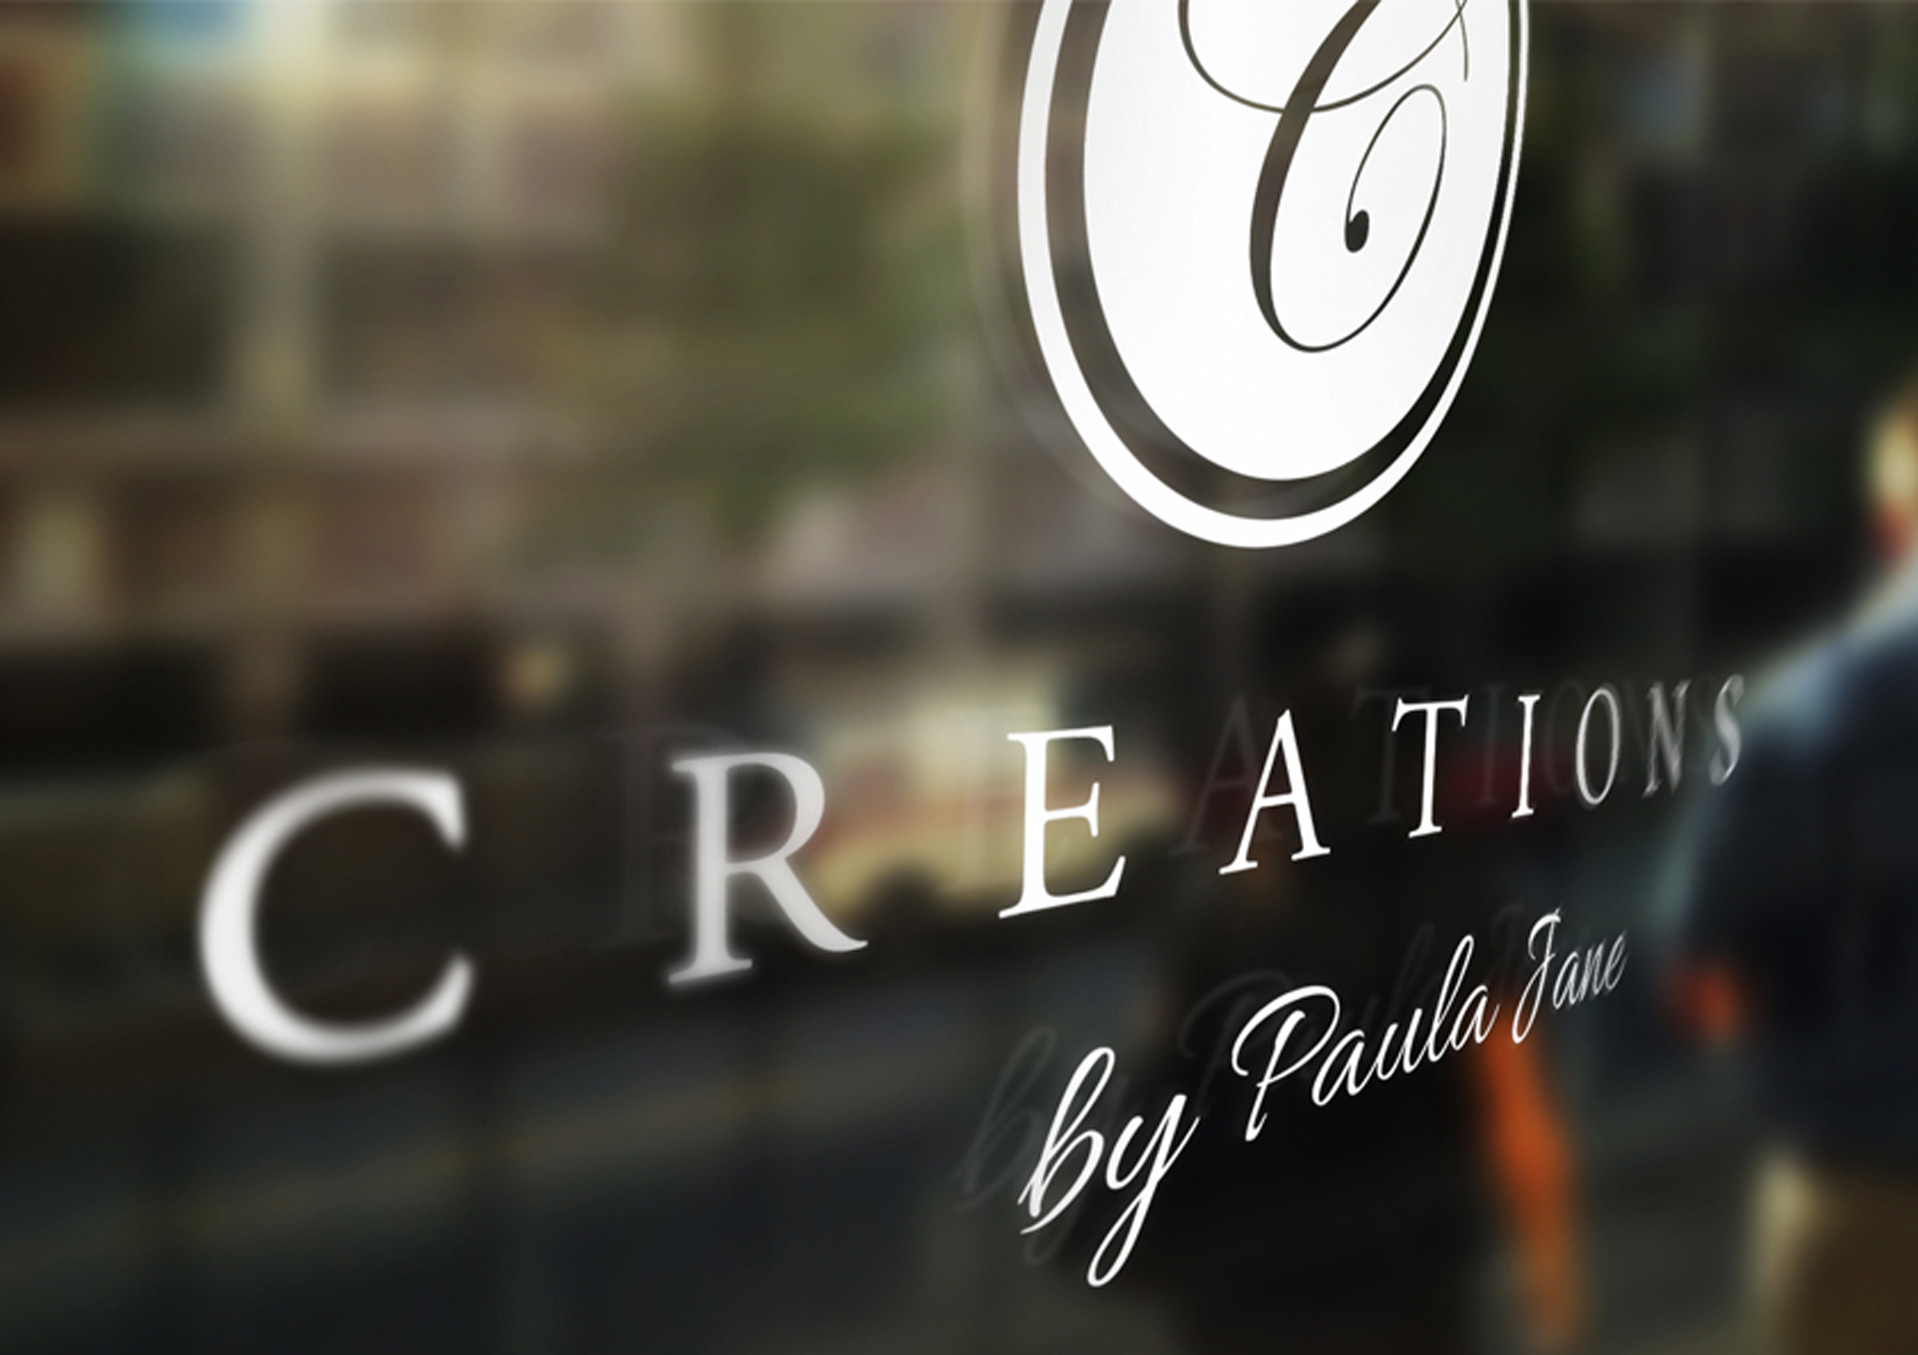 Creations Re-brand